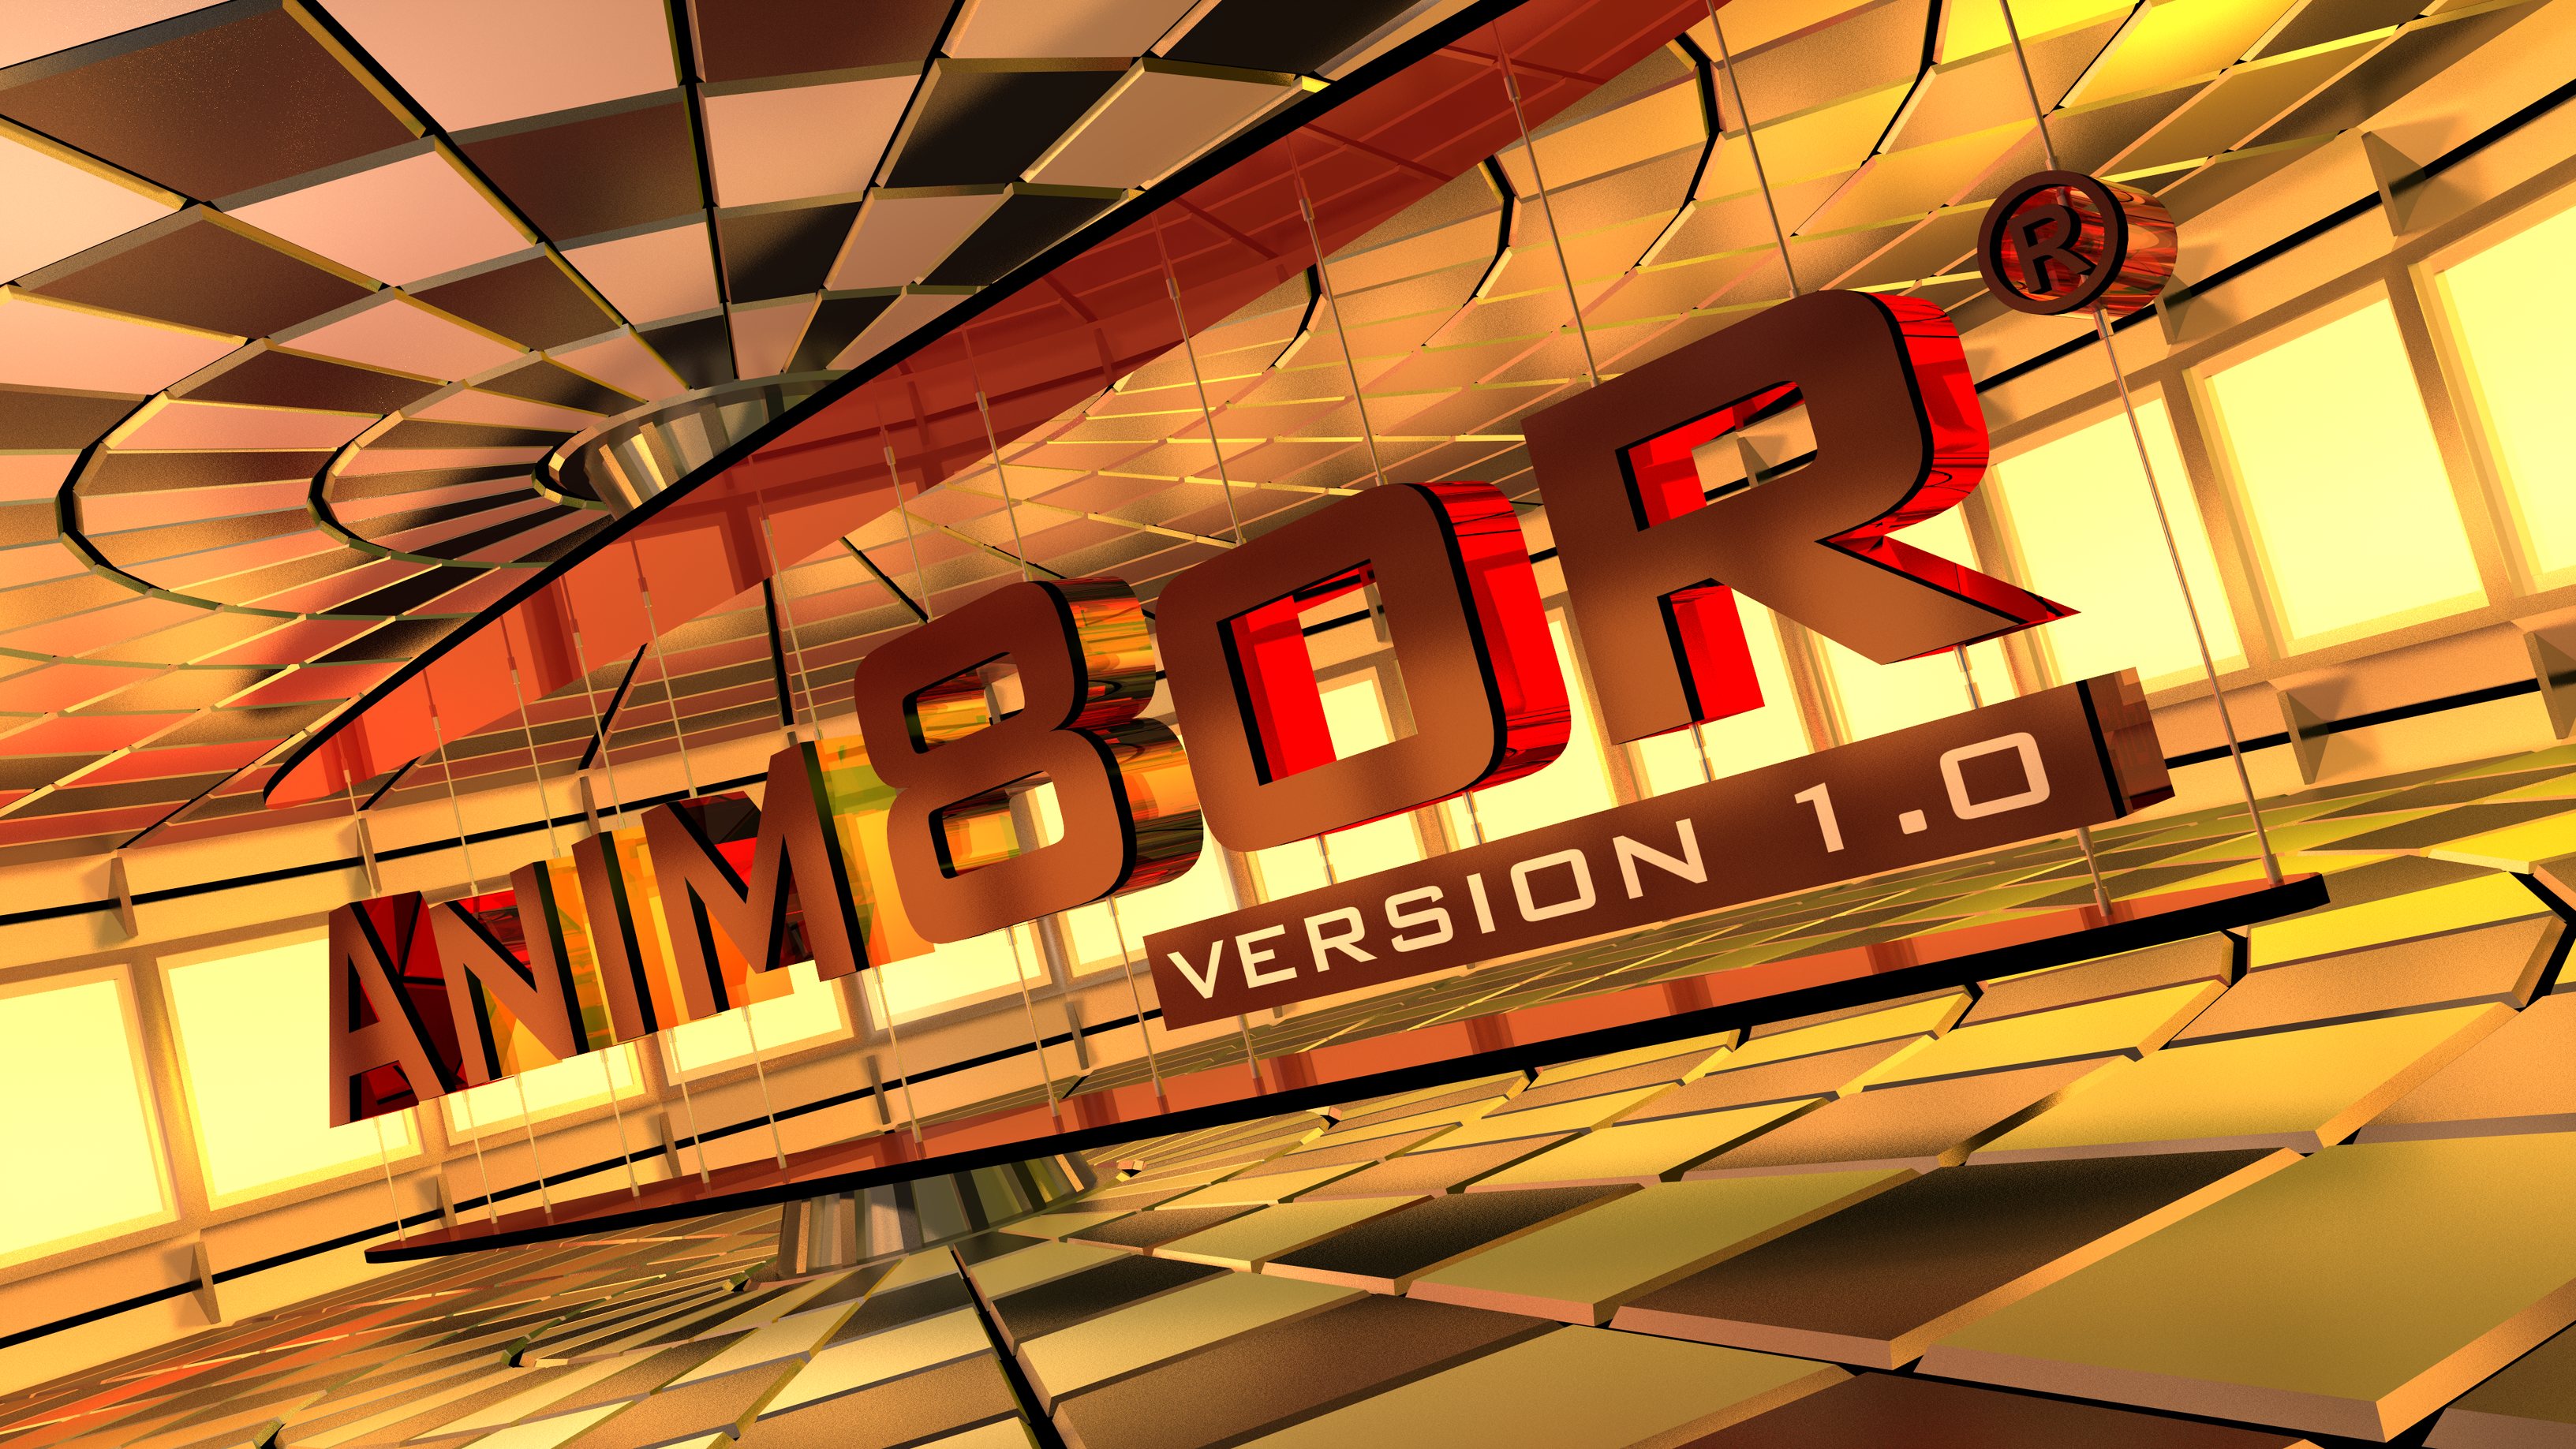 Anim8or v1.0 Splash Screen Contest Submission by TheColclough